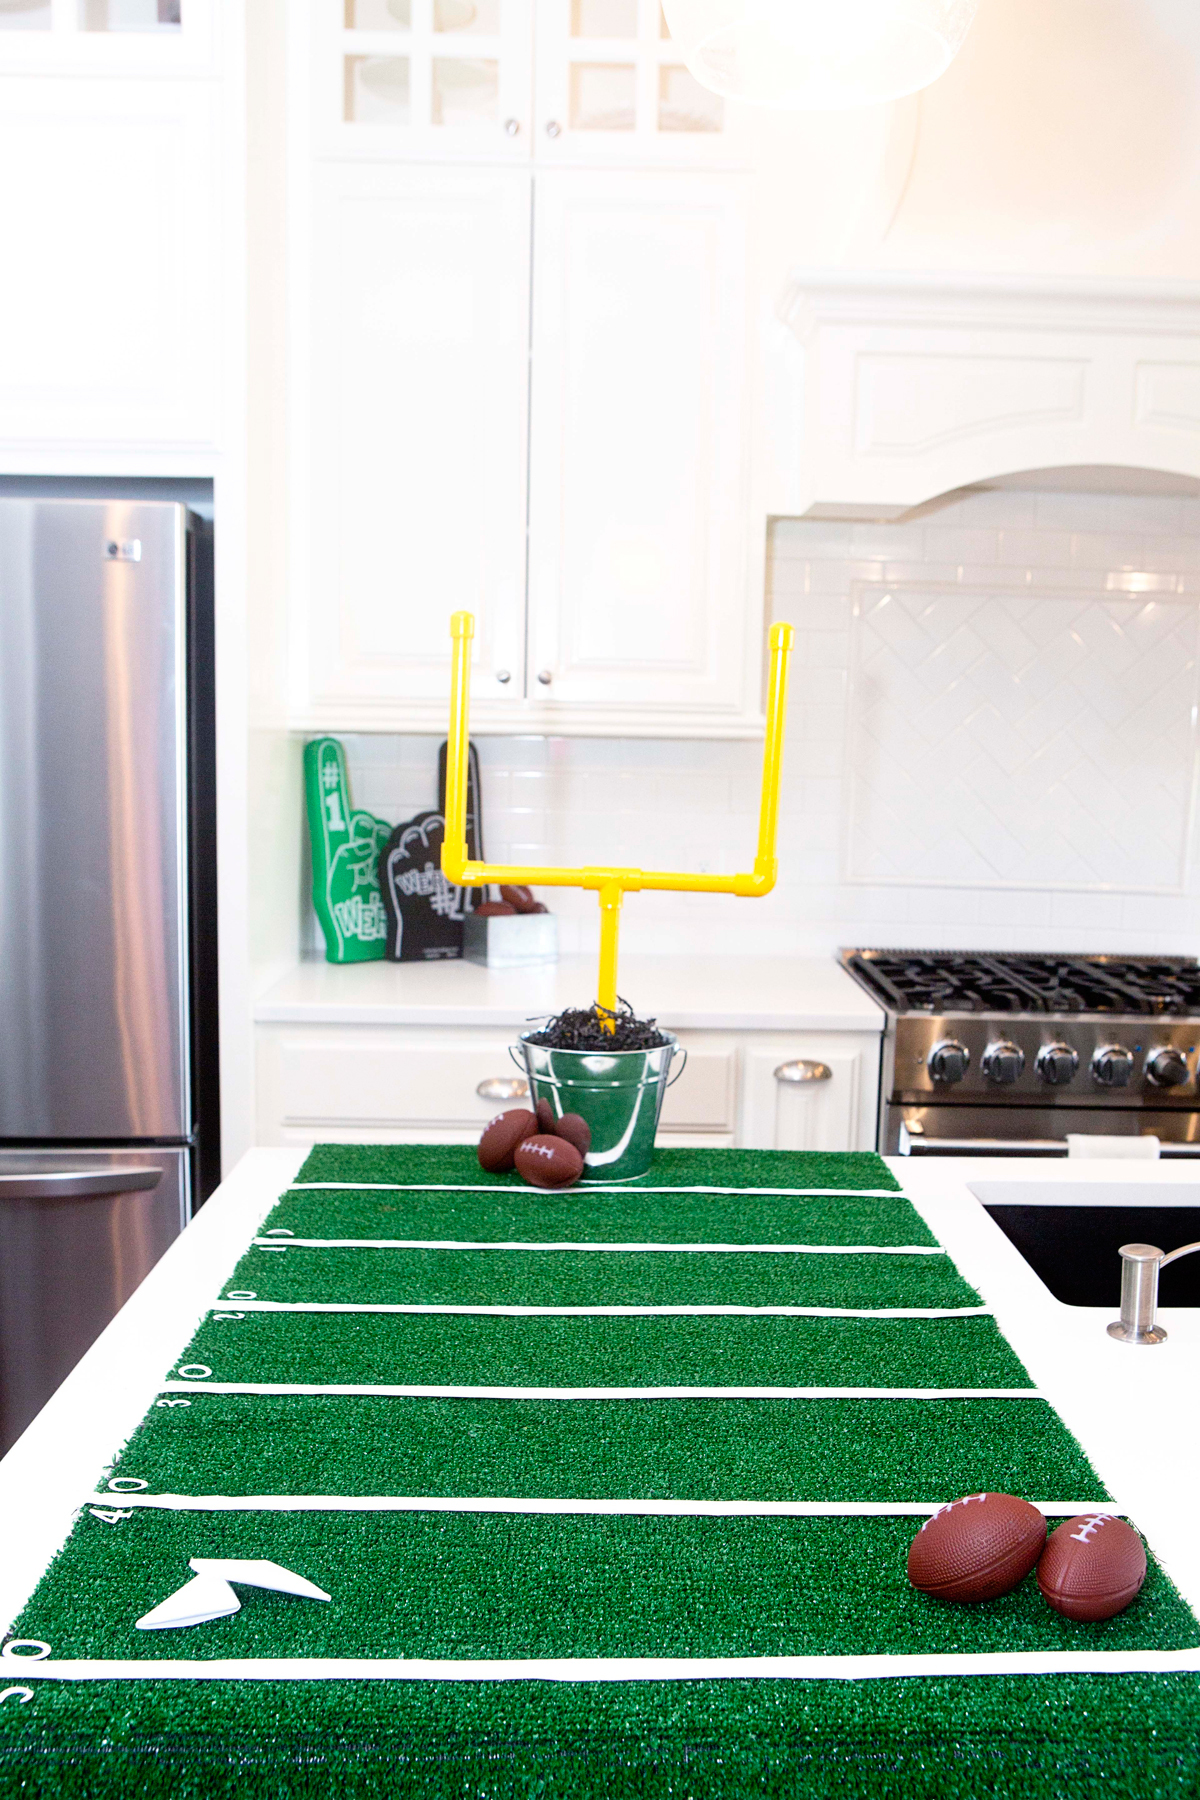 Ready to kickoff a fan-favorite football themed party for the Super Bowl, tailgating or a birthday party? We have fun football theme ideas, decor, activities, food and more! #football #superbowl #partysupplies #birthday